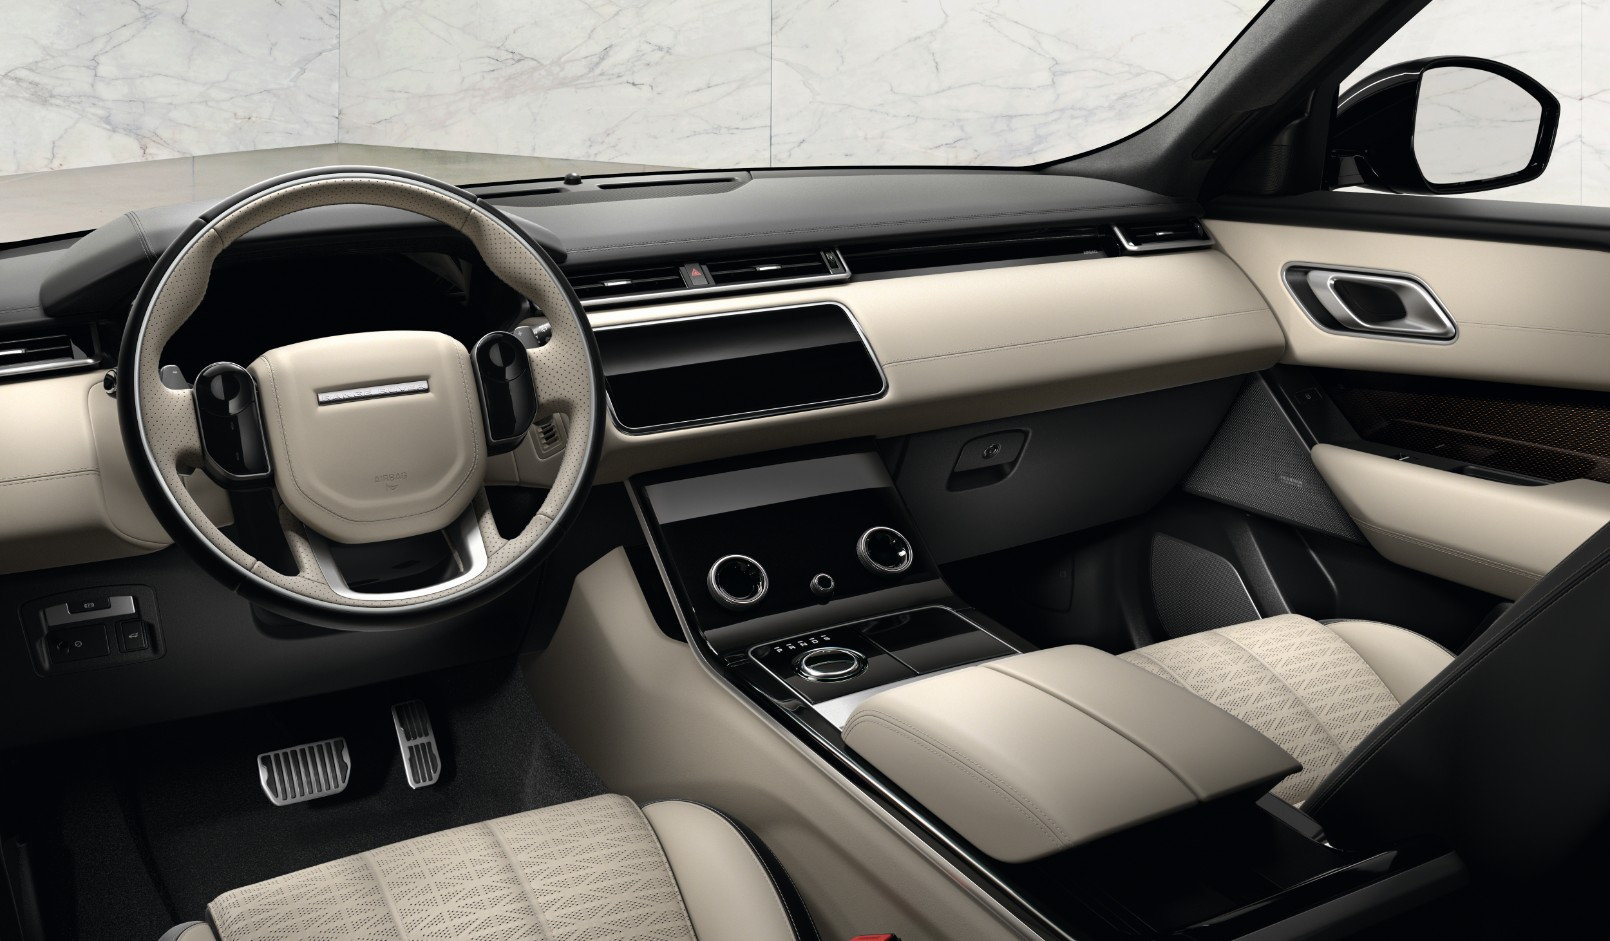 New range rover velar for Interieur range rover velar